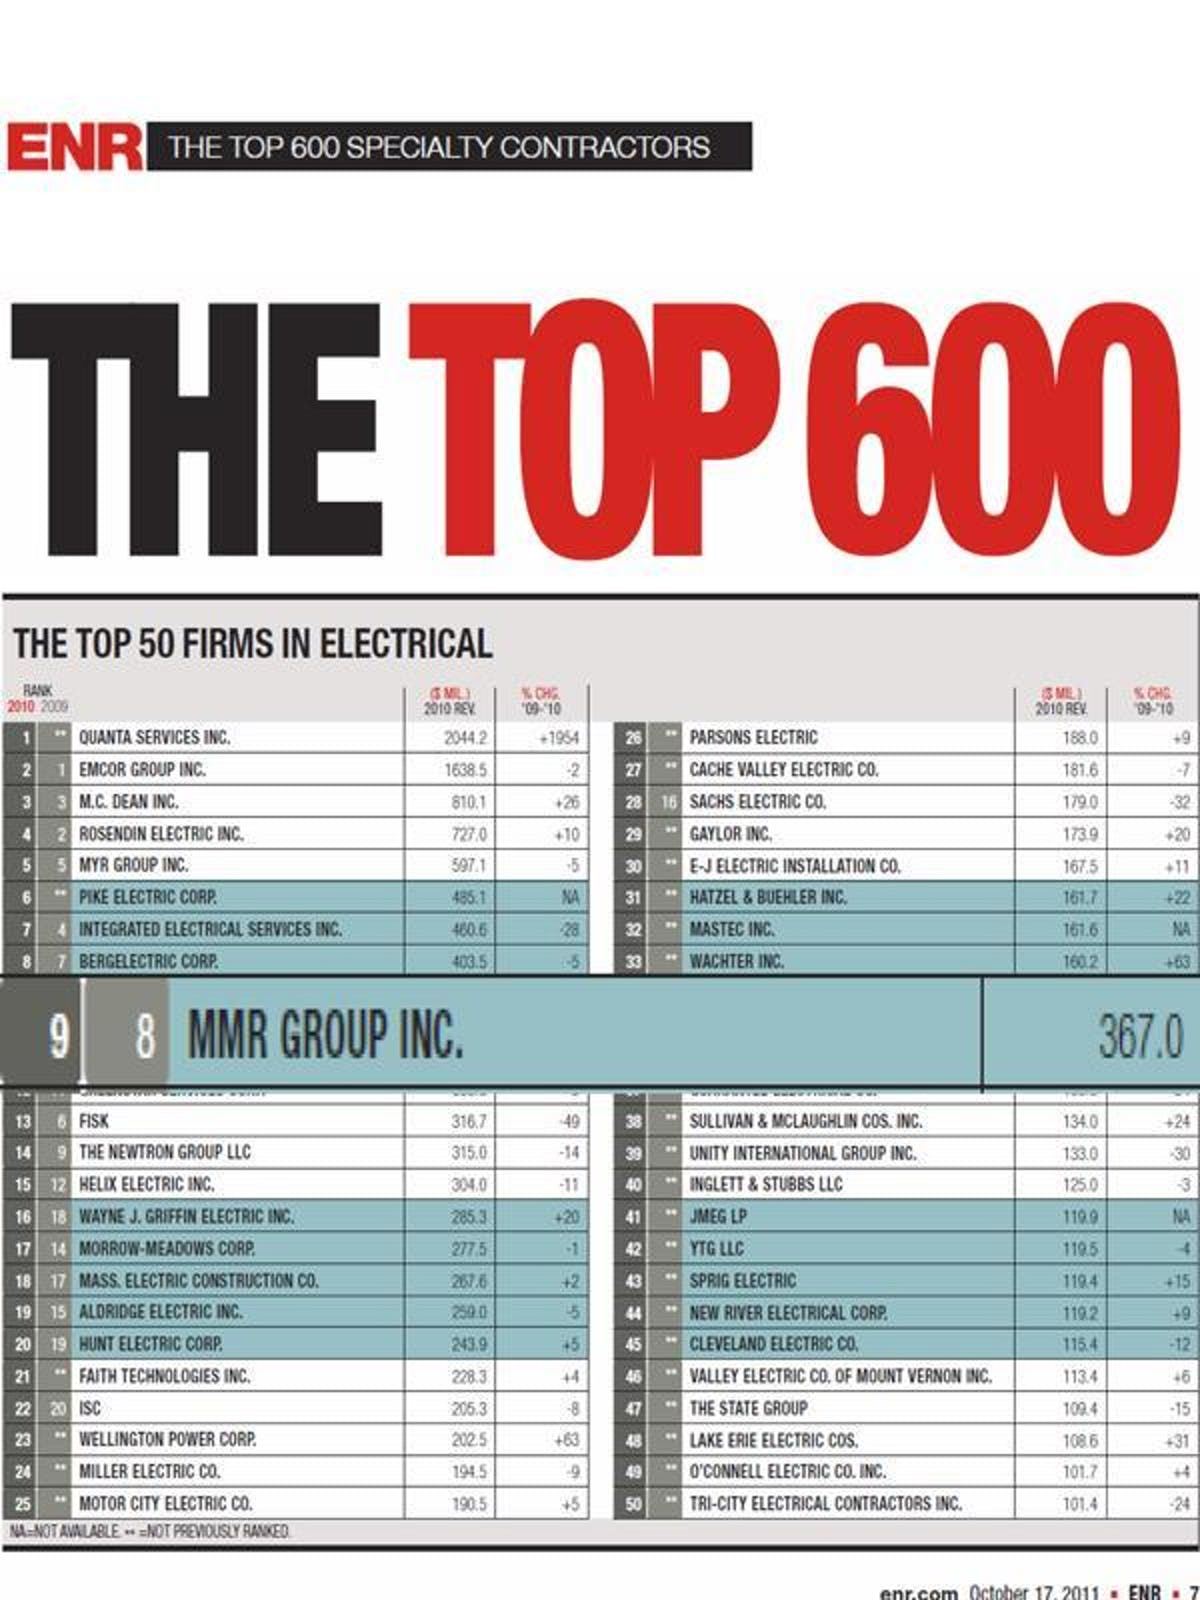 MMR ranked the 9th largest specialty contractor by ENR Magazine.